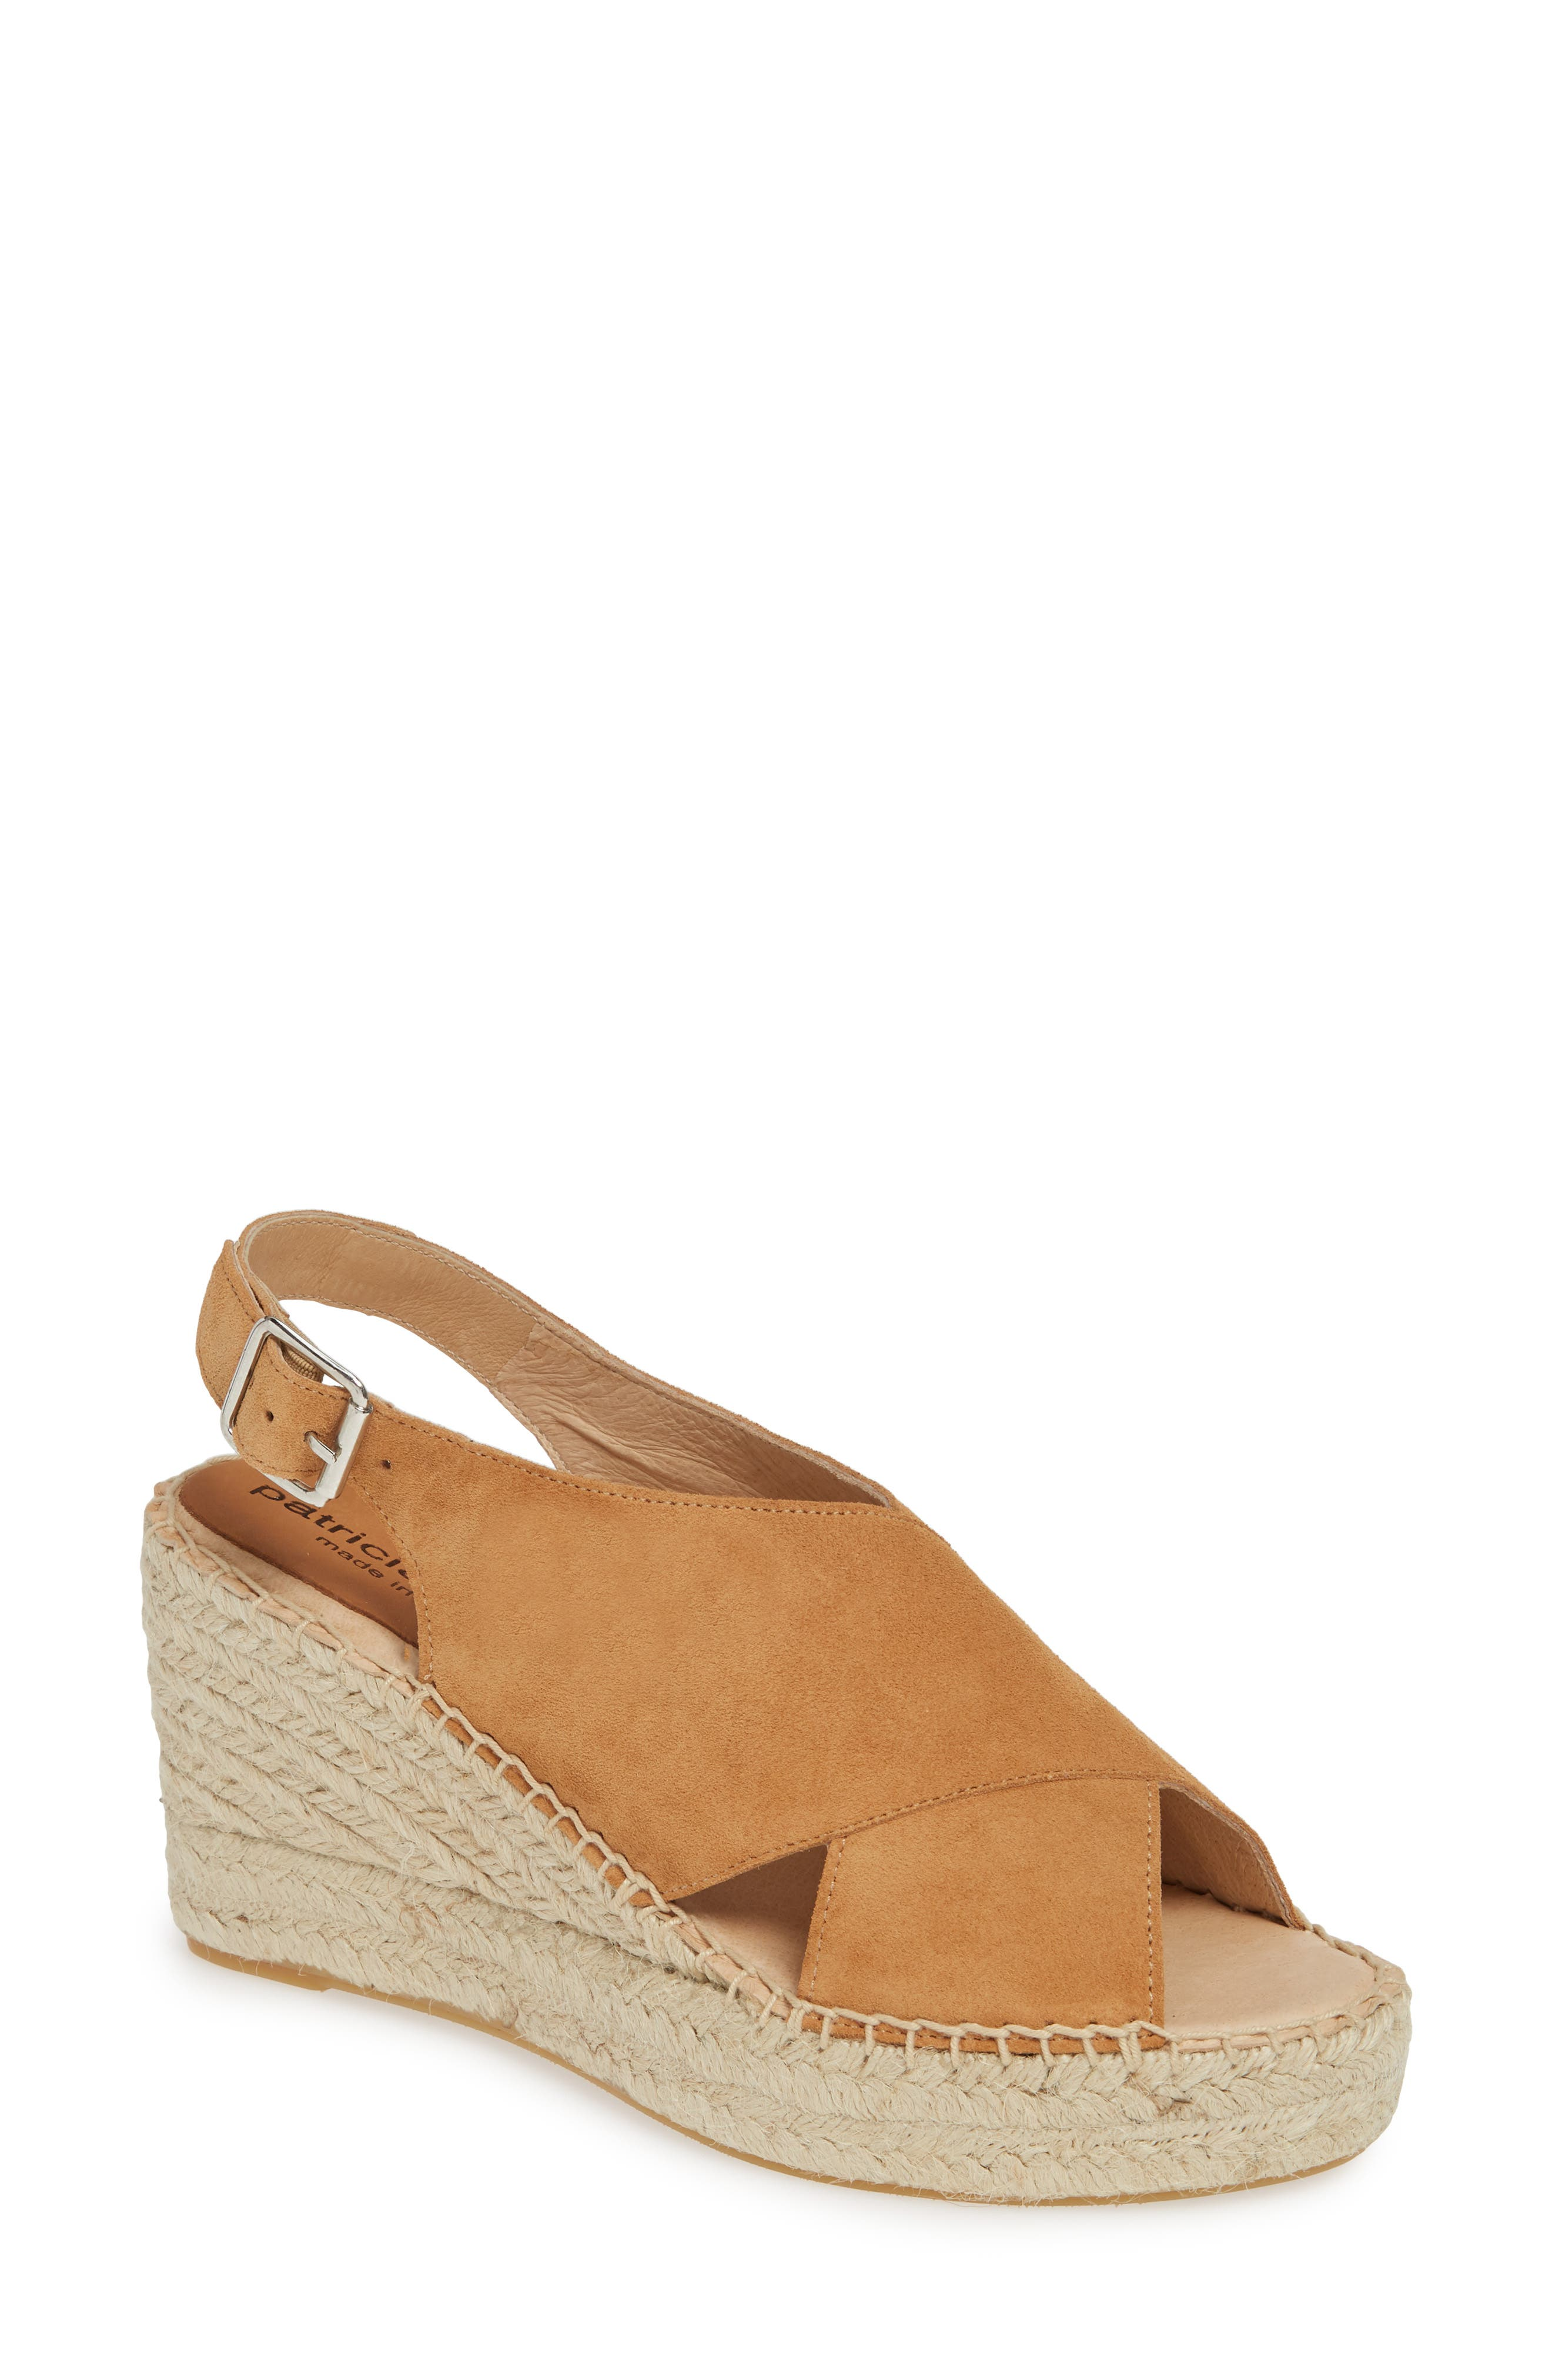 PATRICIA GREEN, Madeline Espadrille Wedge Sandal, Main thumbnail 1, color, CAMEL SUEDE